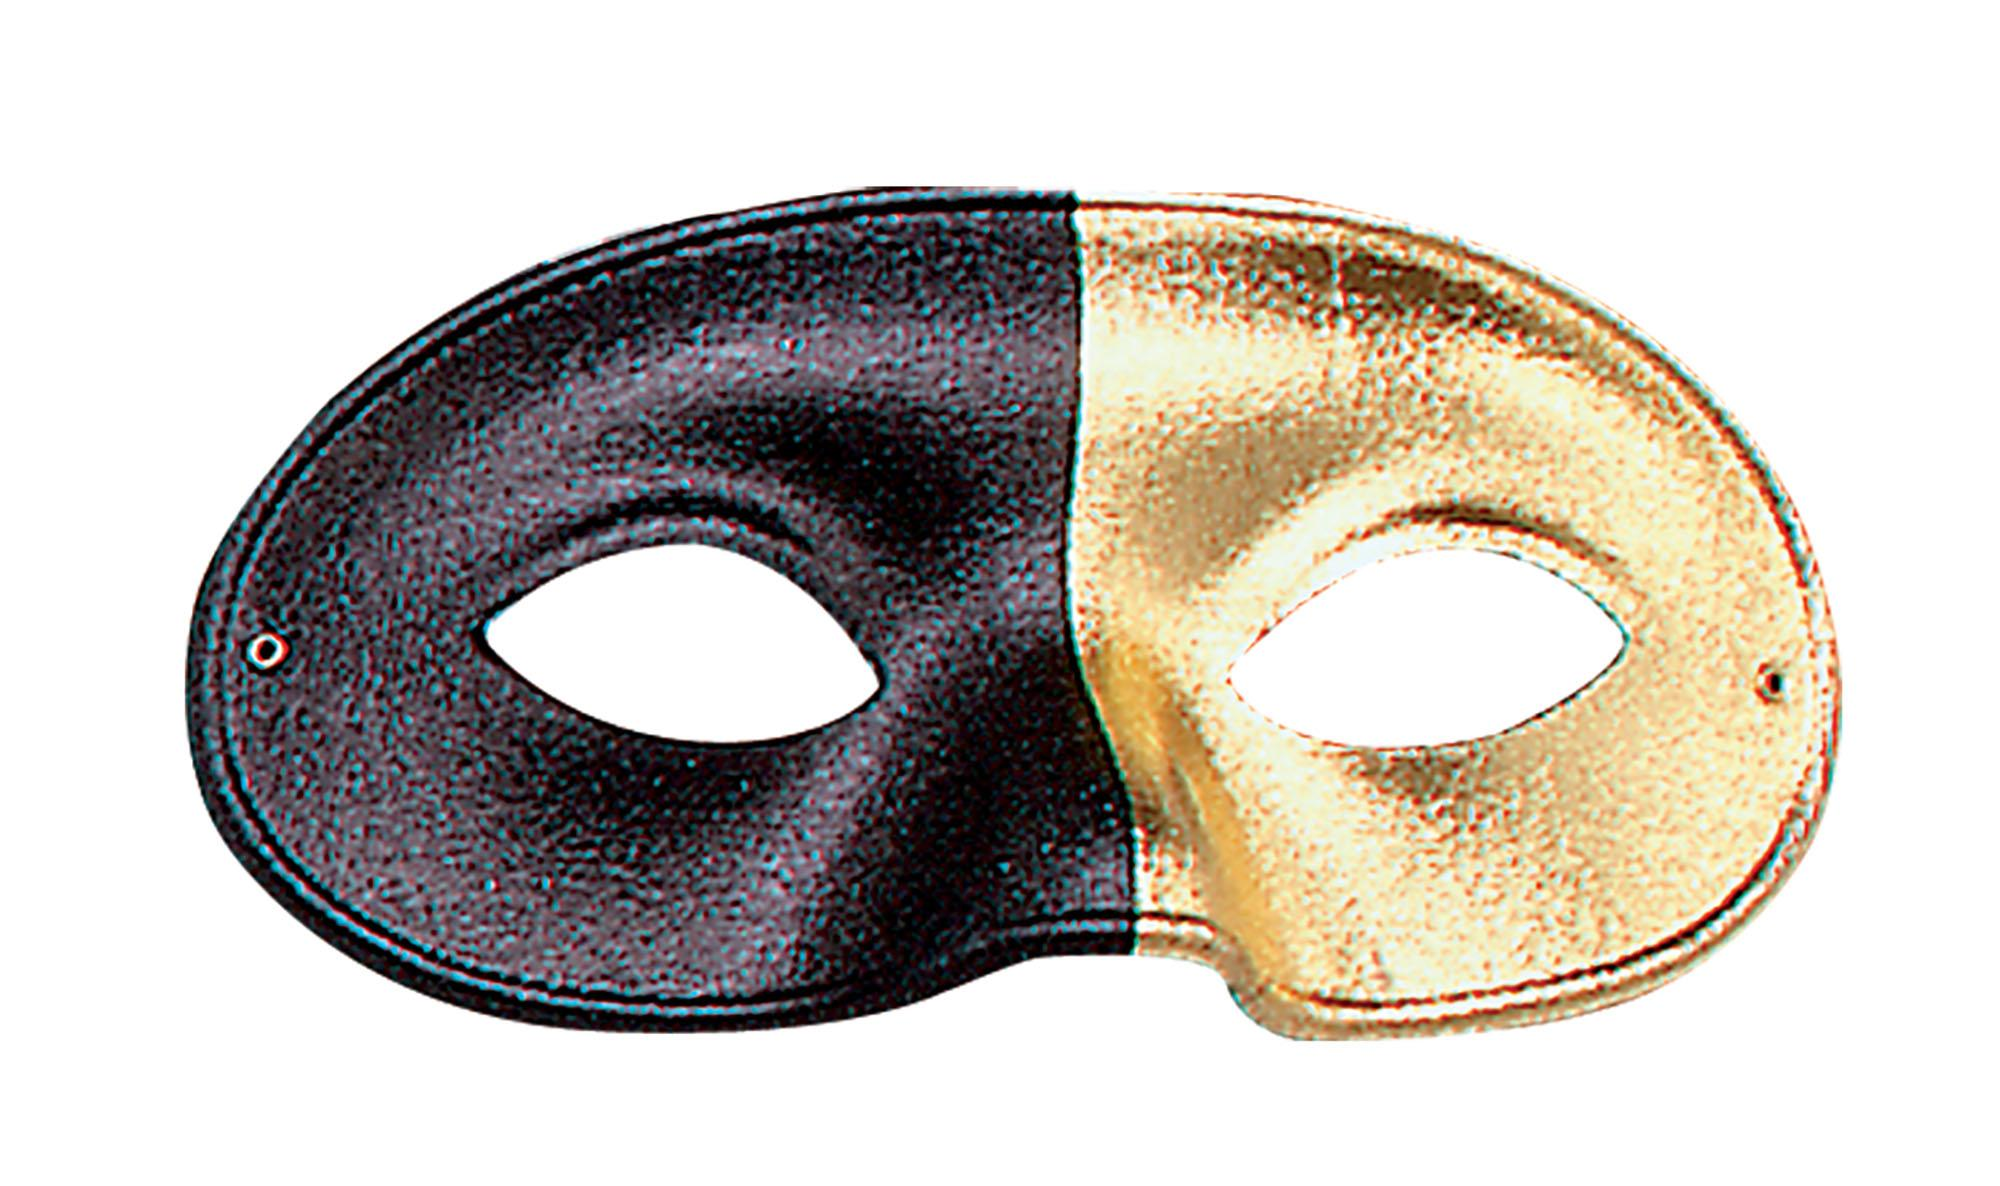 Metallic Two-Tone Eye Mask